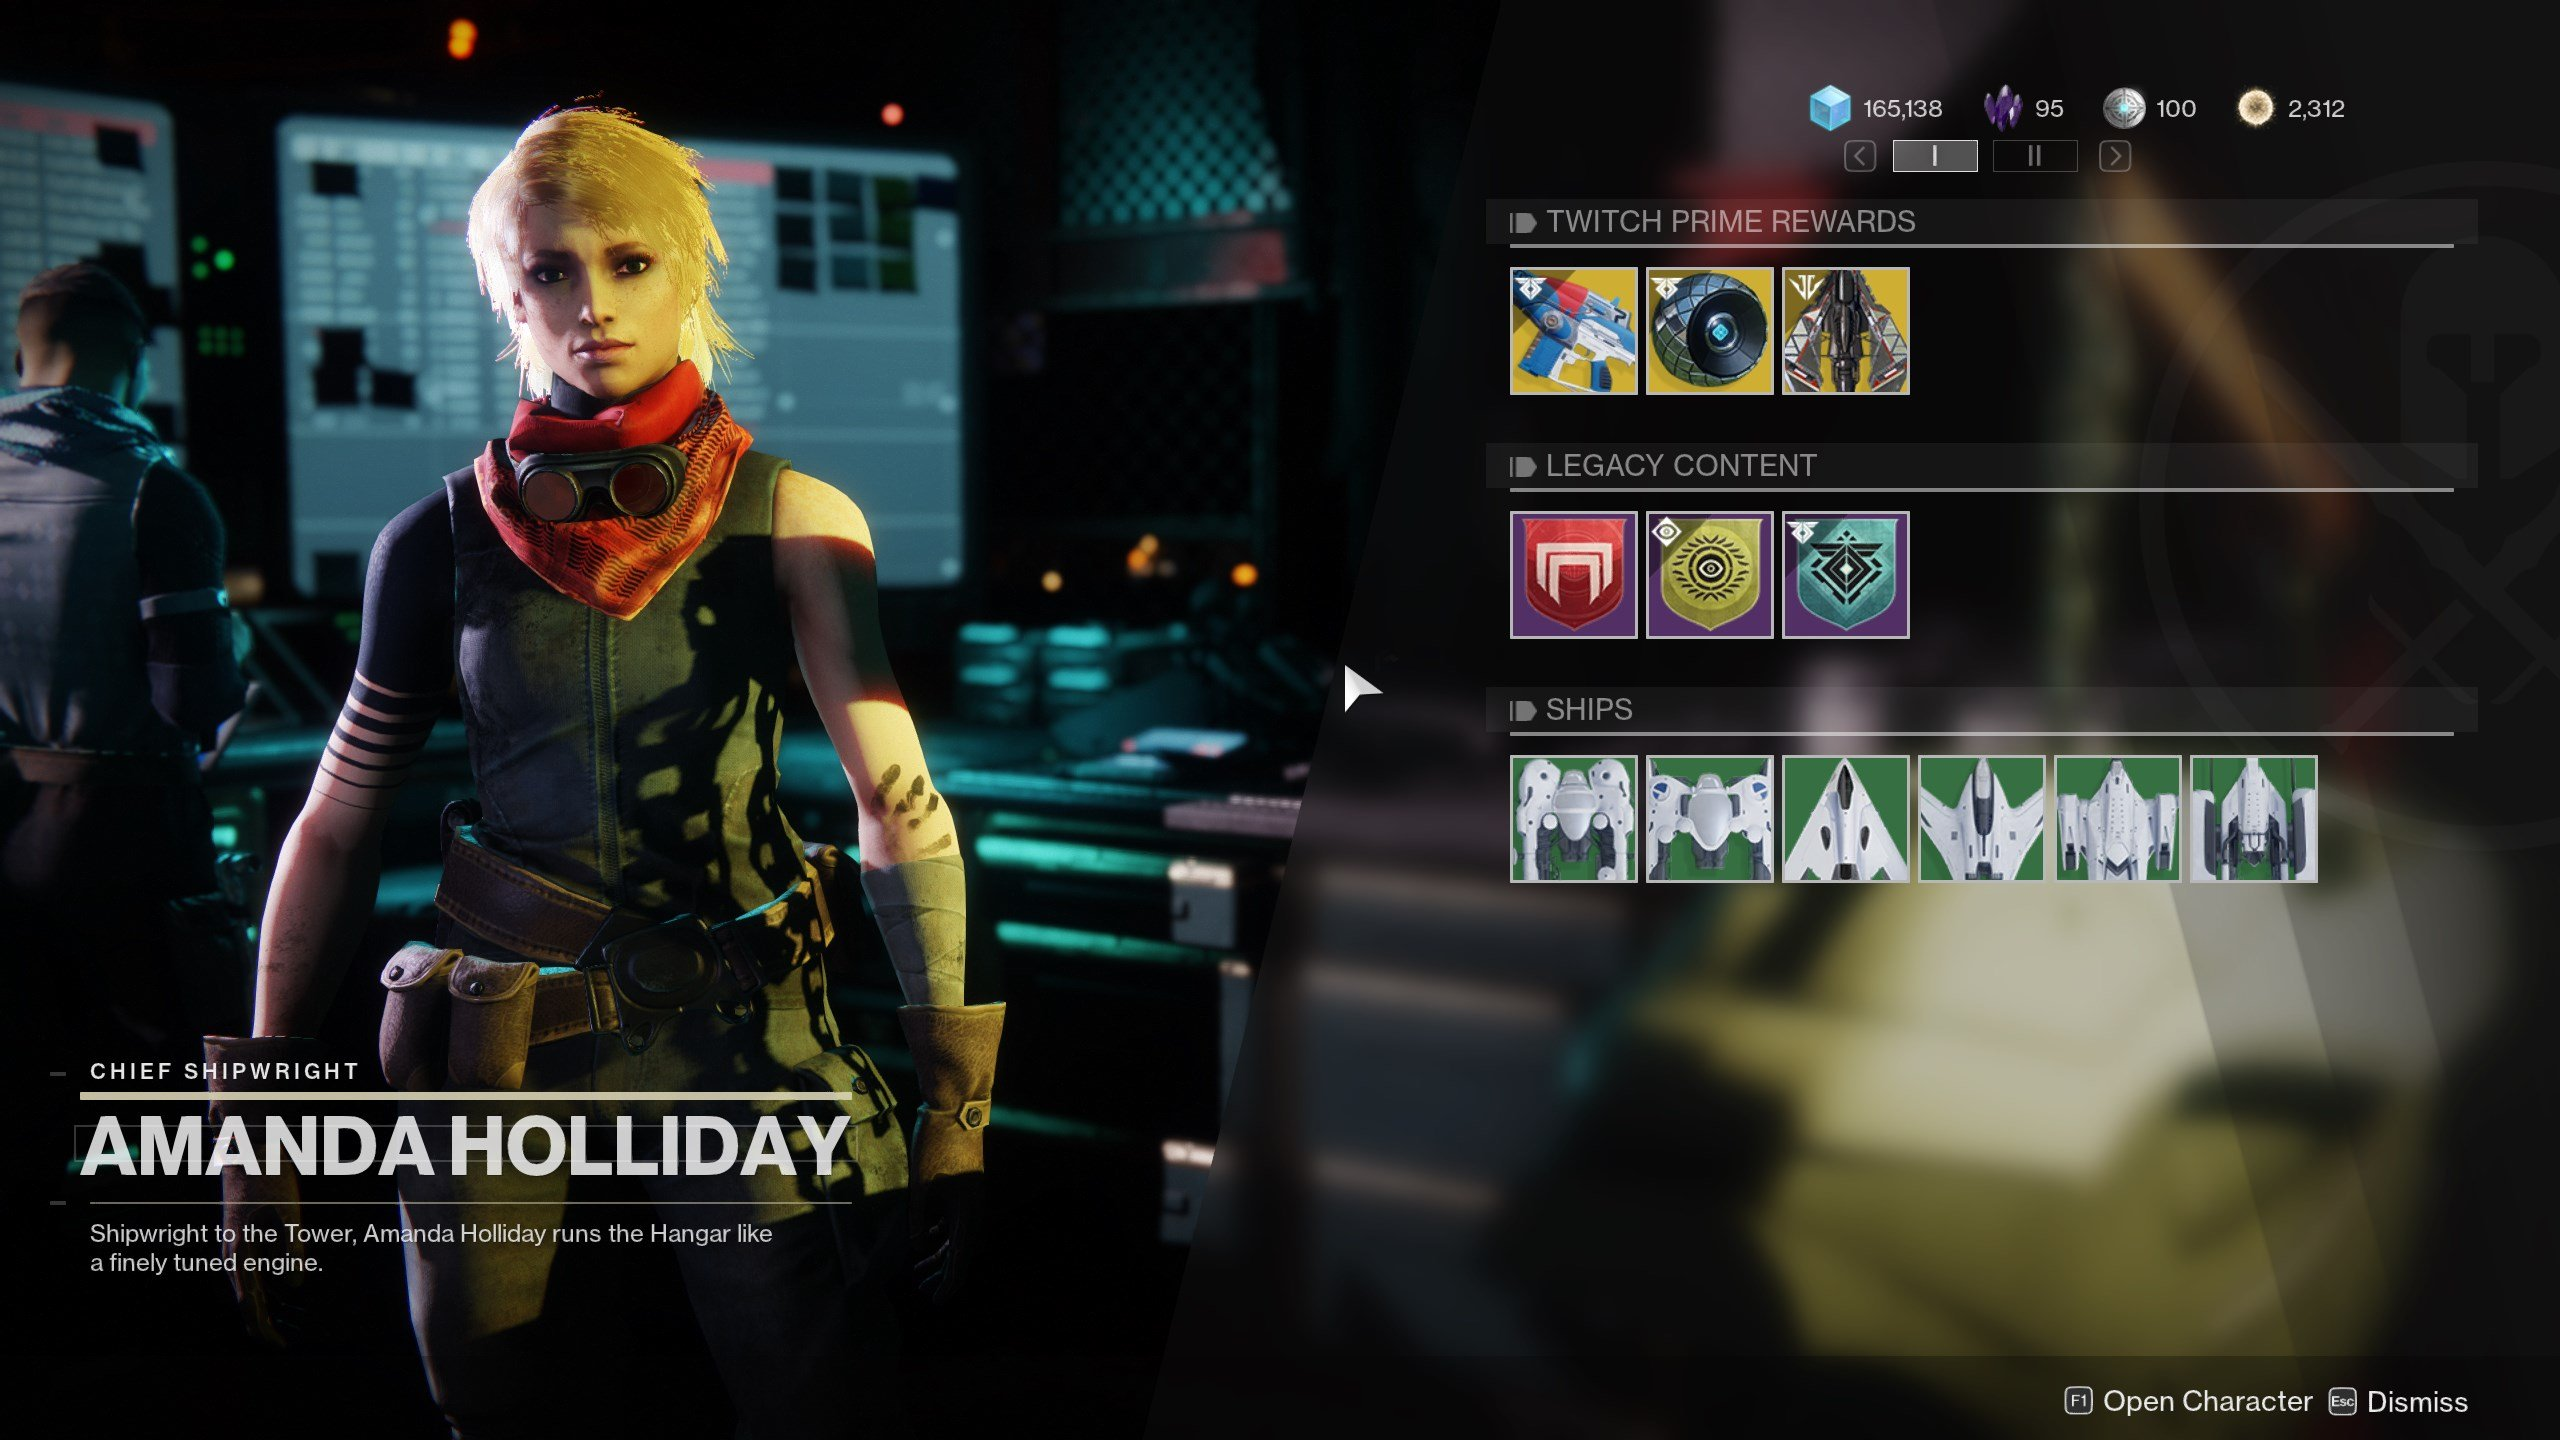 Destiny 2 Twitch Prime exotic loot drop Amanda Holliday menu